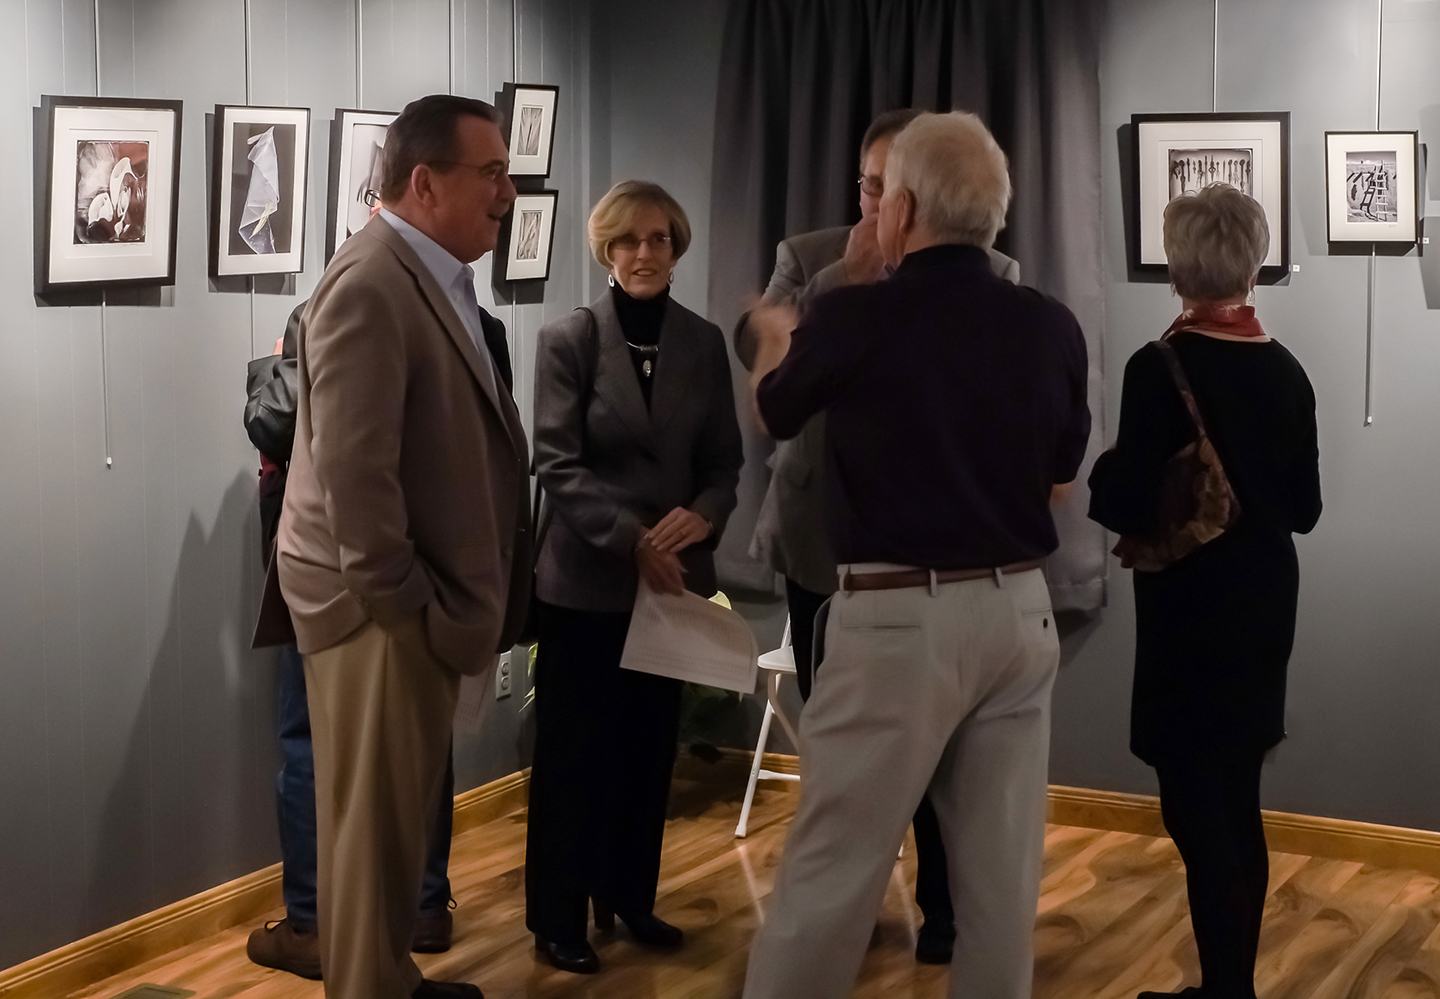 Guests at Collectors Preview: Robyn & Walter Krupski, Stephen Krupski, Anne & Ted Swanson